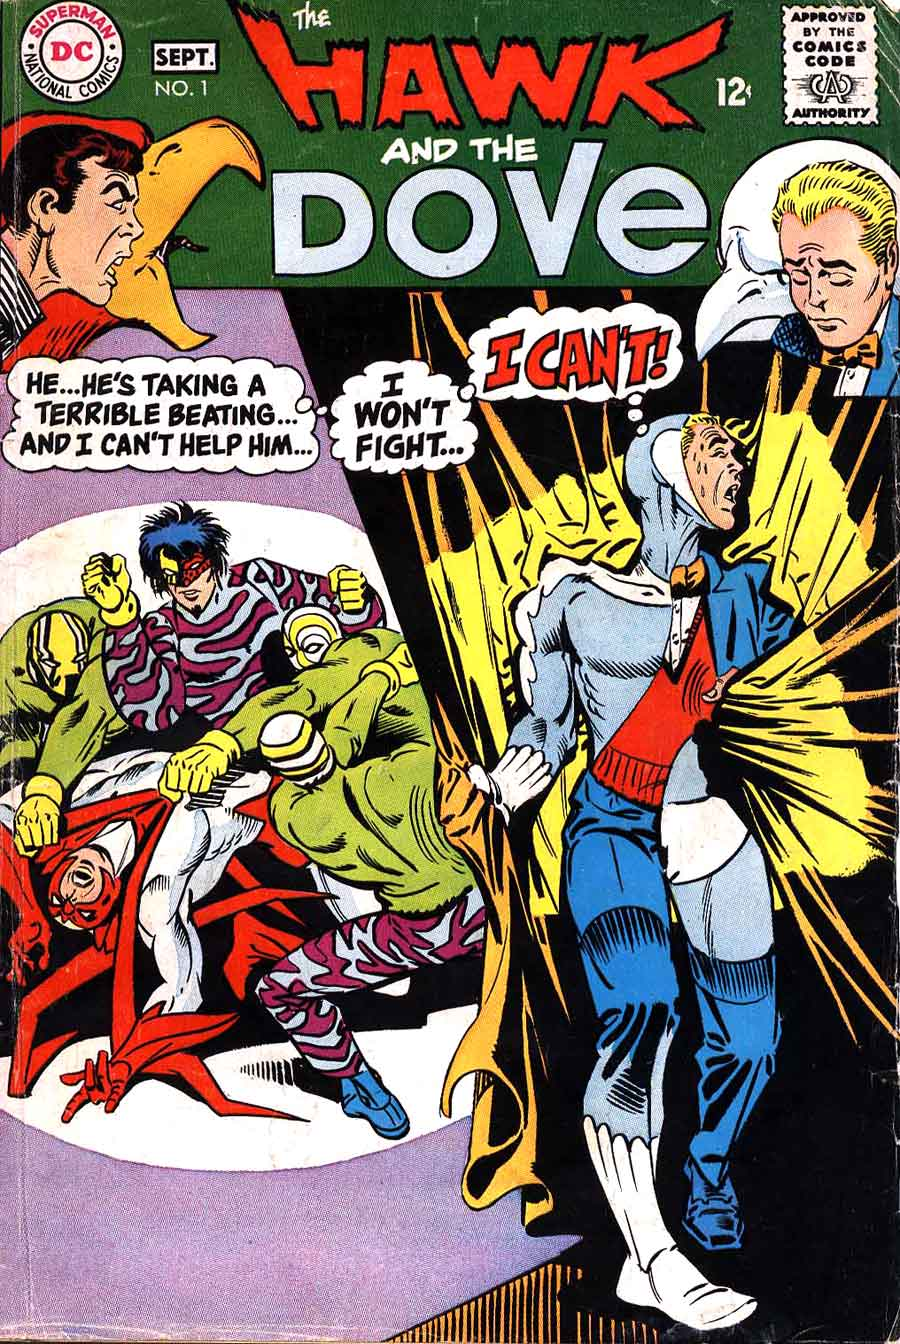 Hawk and the Dove v1 #1 dc silver age 1960s comic book cover art by Steve Ditko